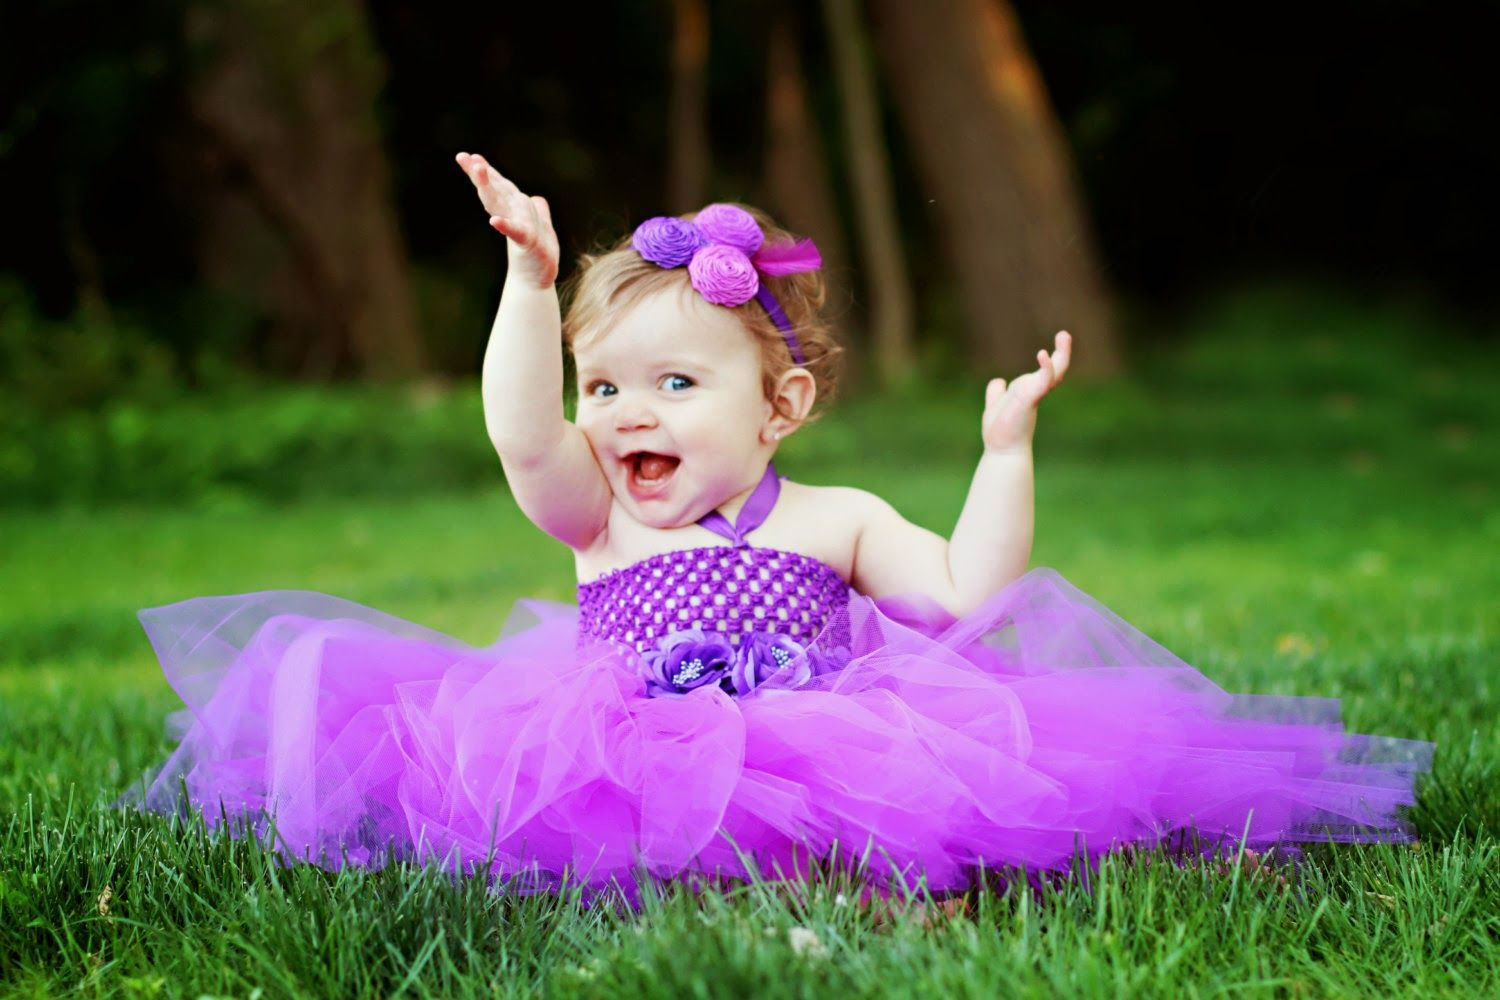 Physical Development Of Babies Very Cute Baby Cute Baby Pictures Cute Baby Wallpaper